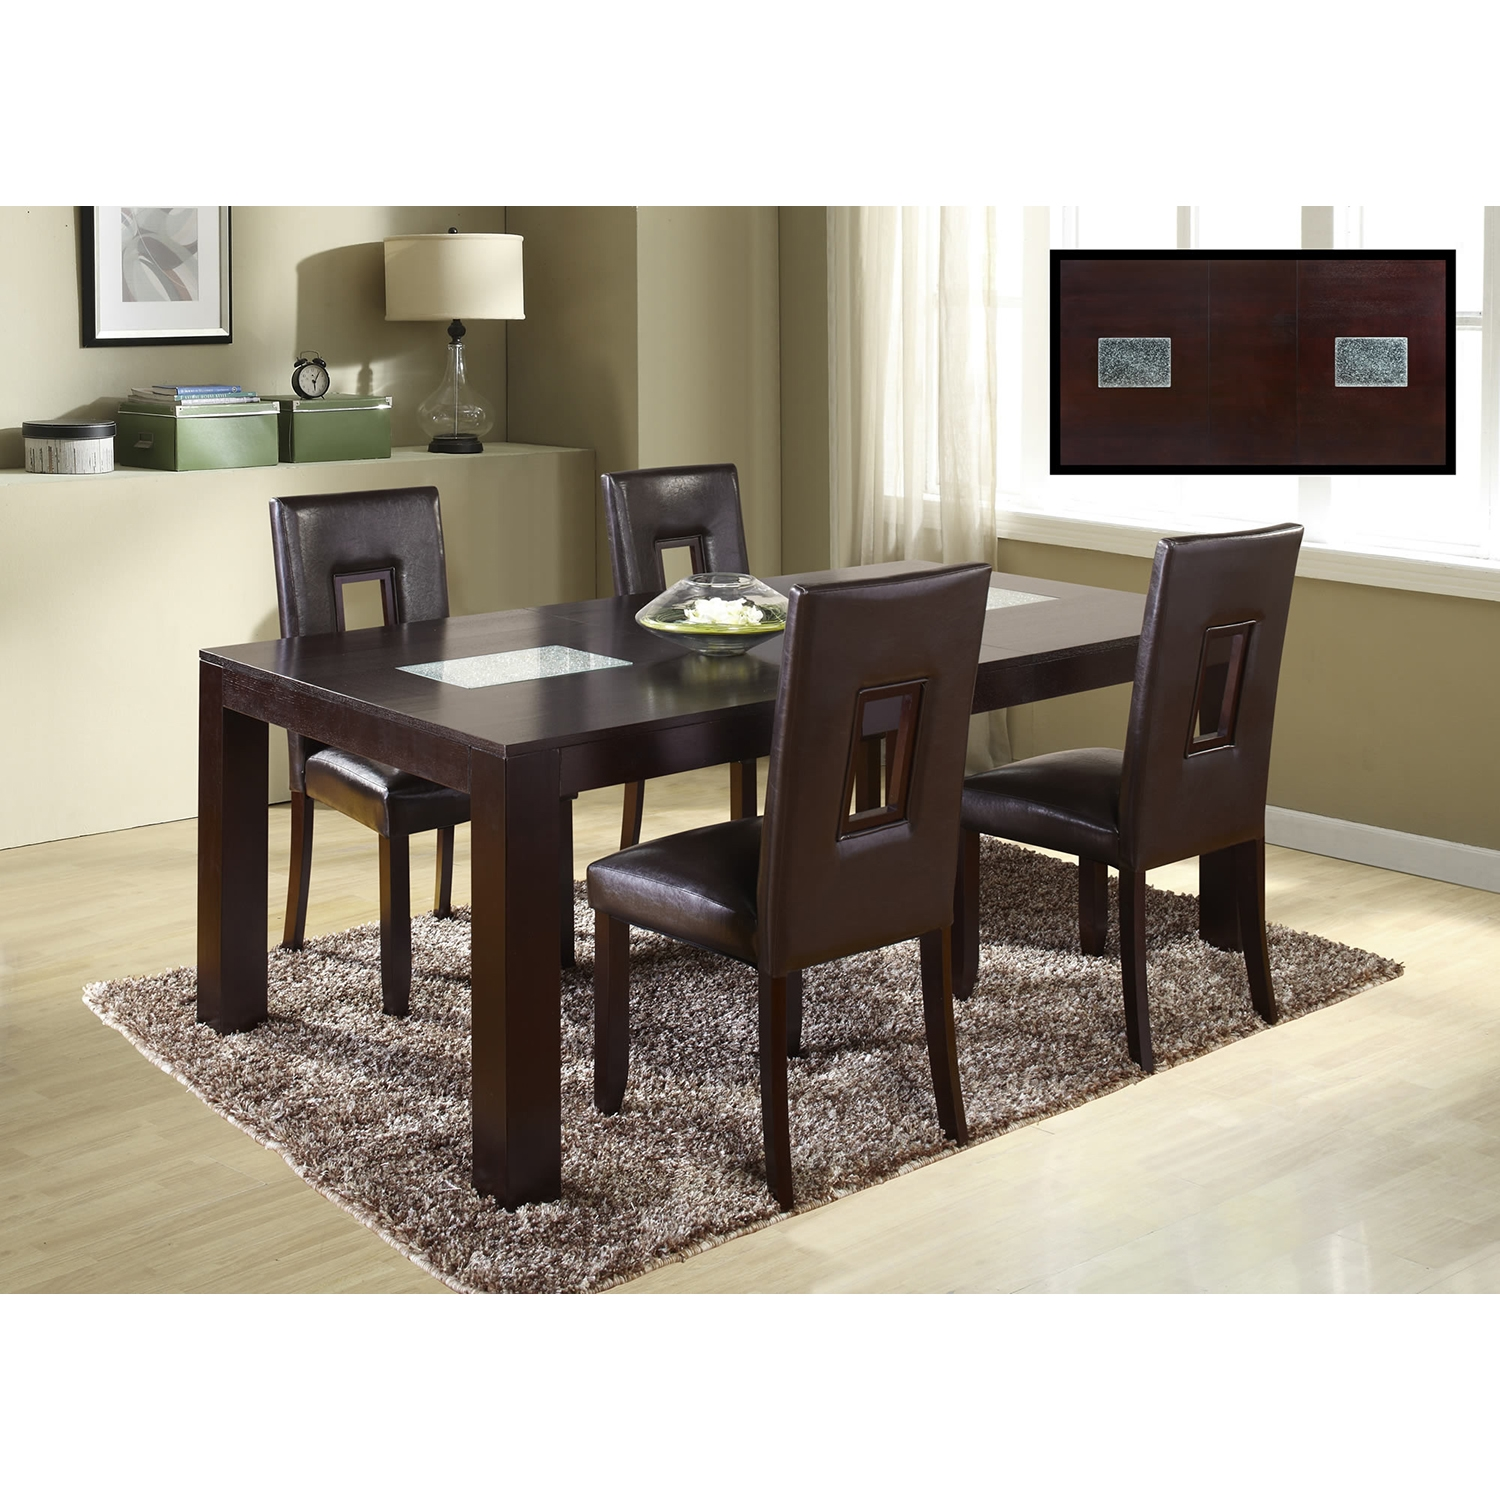 Nicolas Dining Table in Wenge